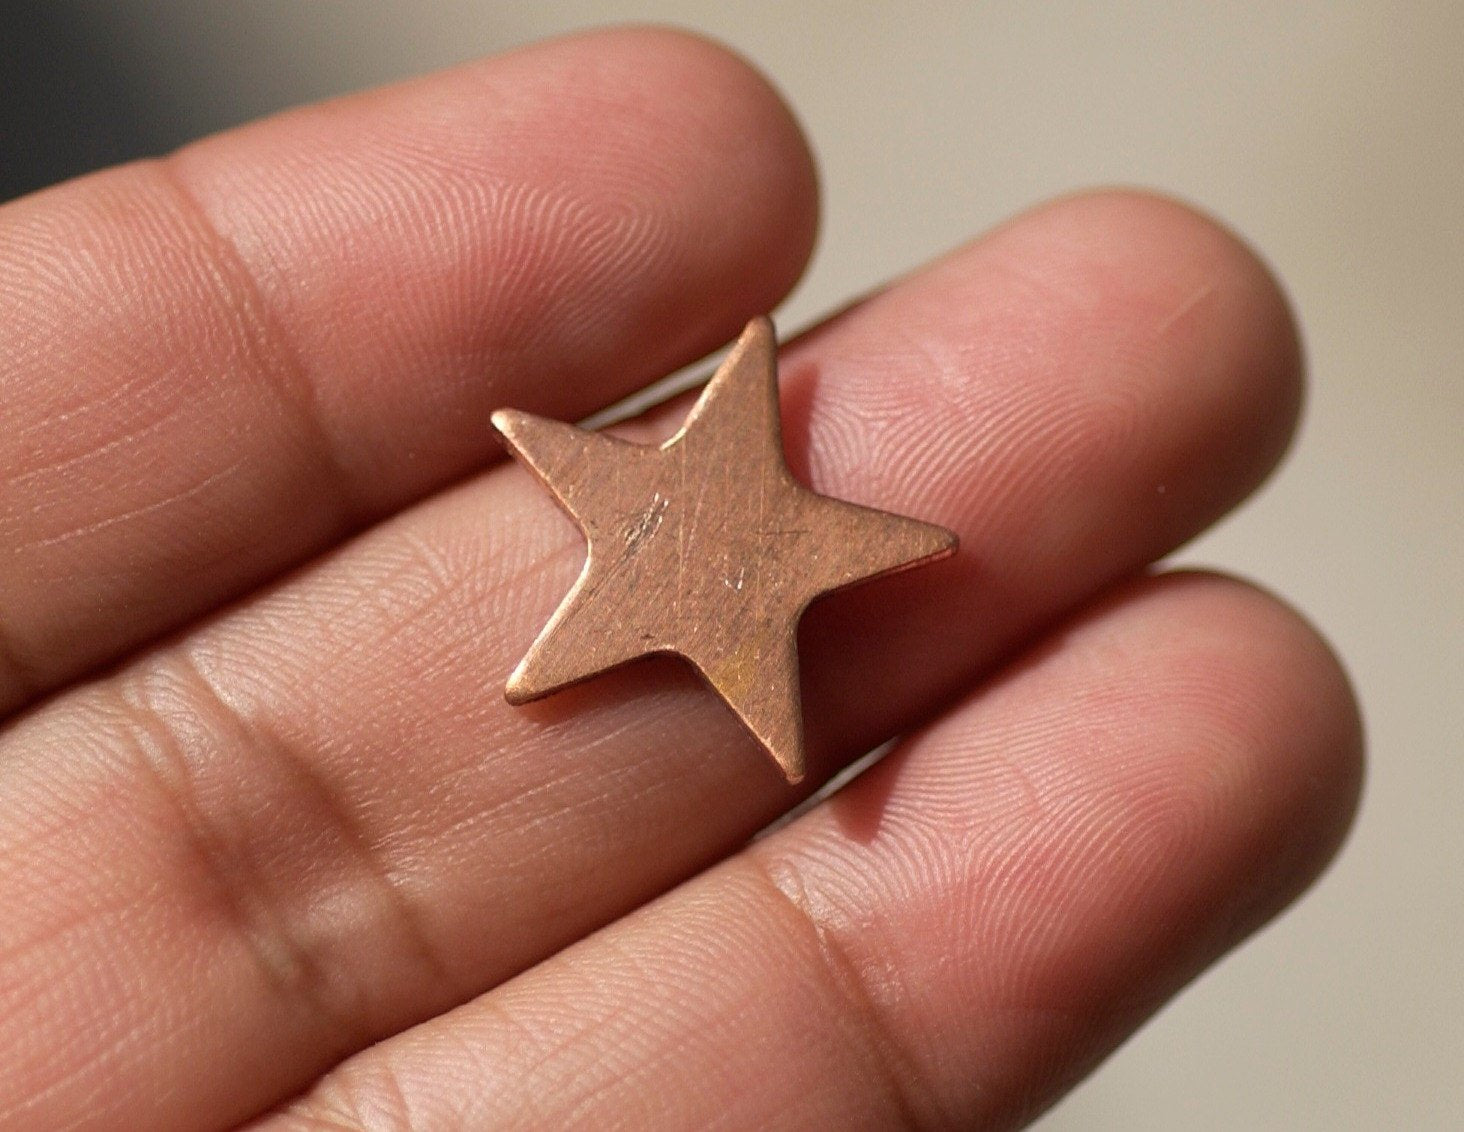 Stars 17mm Antique hammered Cutout for Enameling Stamping Texturing Soldering Blanks - Variety of Metals 6 Pieces